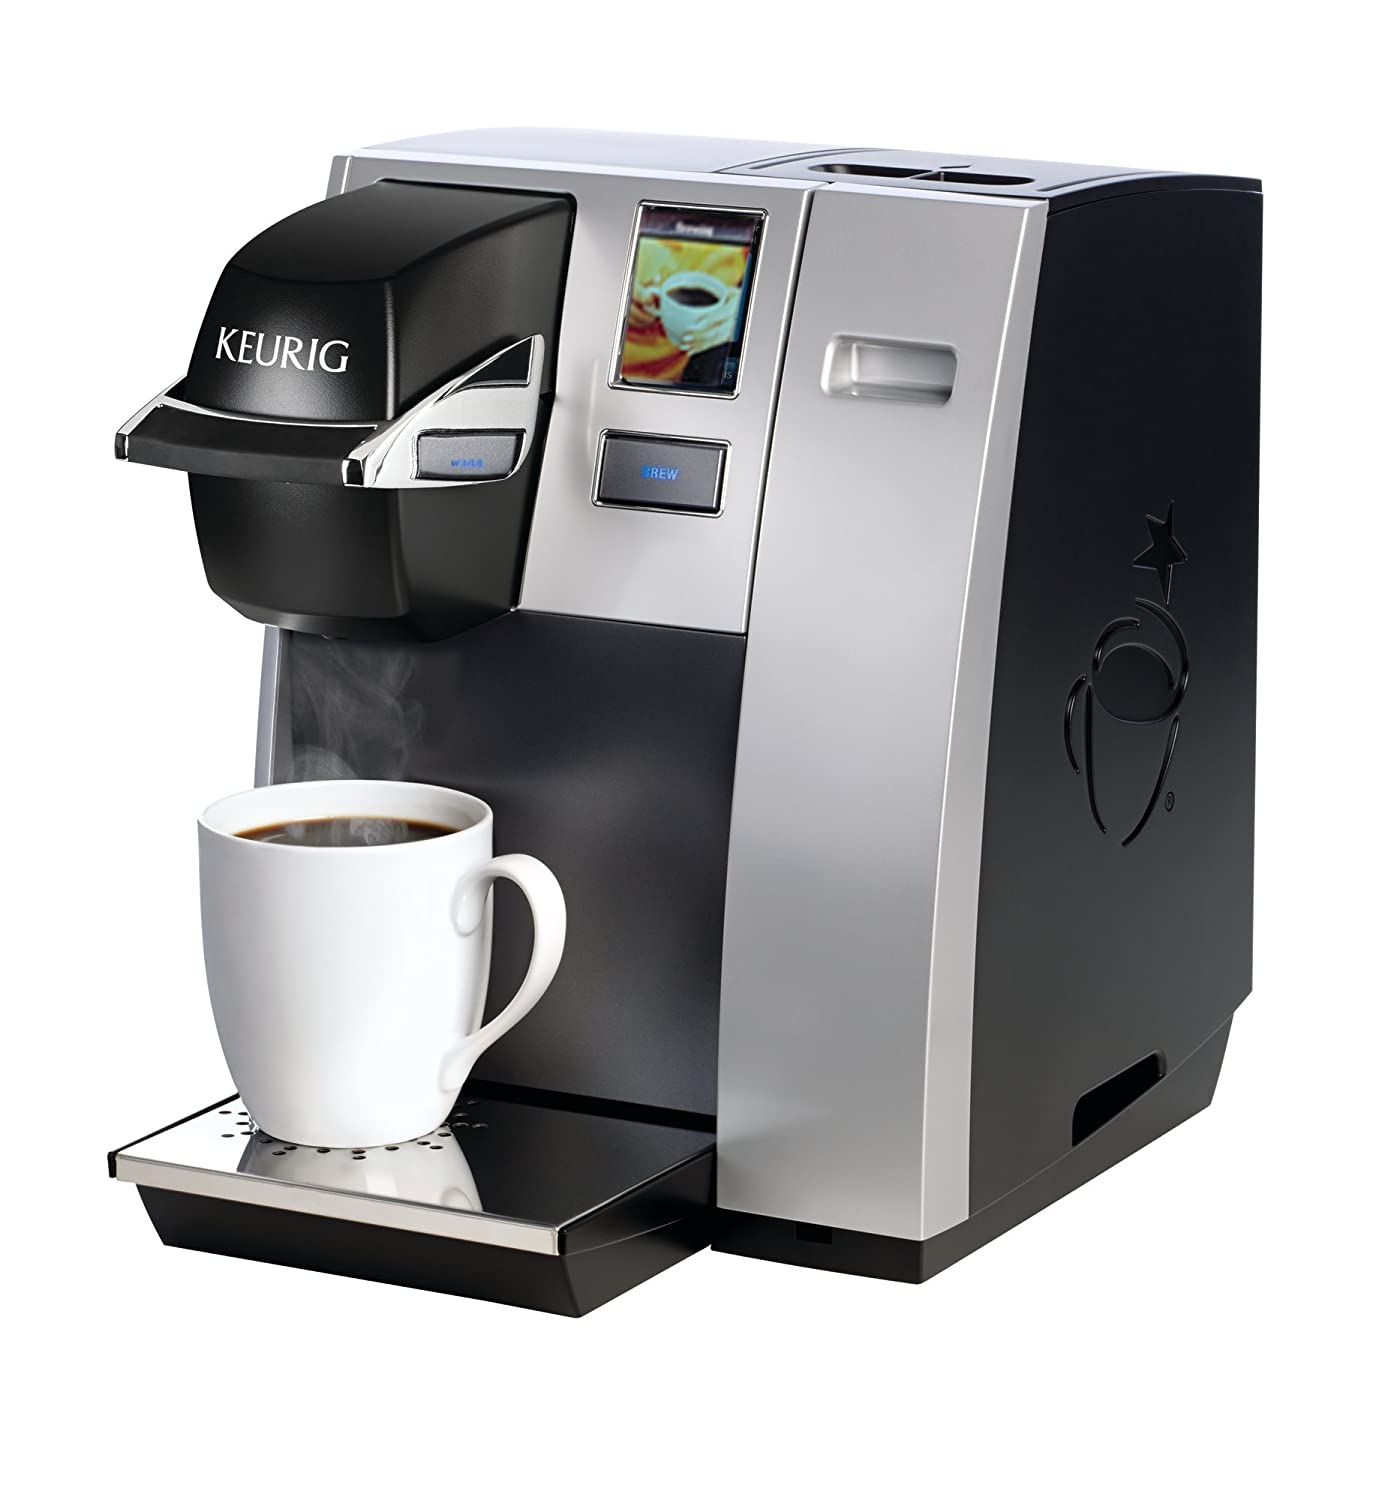 keurig b150 manual open source user manual u2022 rh dramatic varieties com Keurig B66 User Guide Keurig B66 Coffee Maker Problems